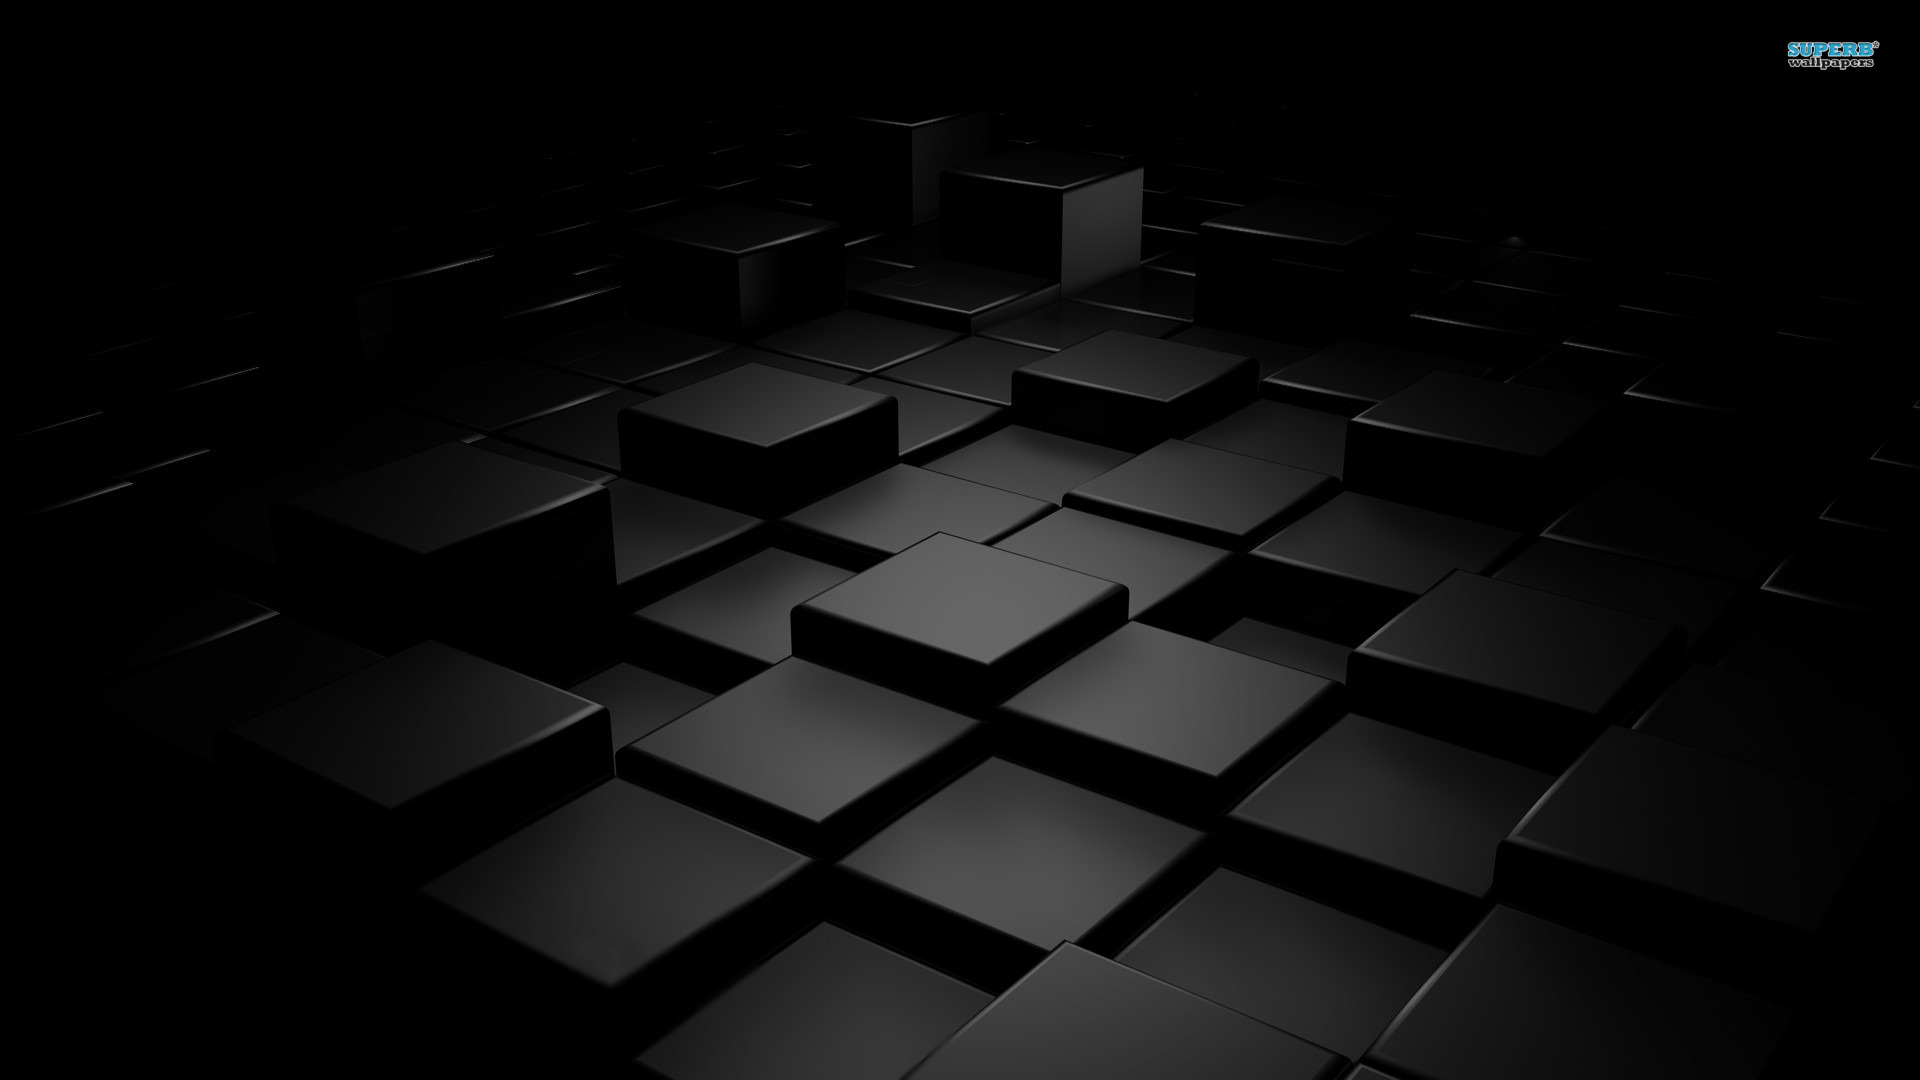 Cubes wallpaper 1920x1080